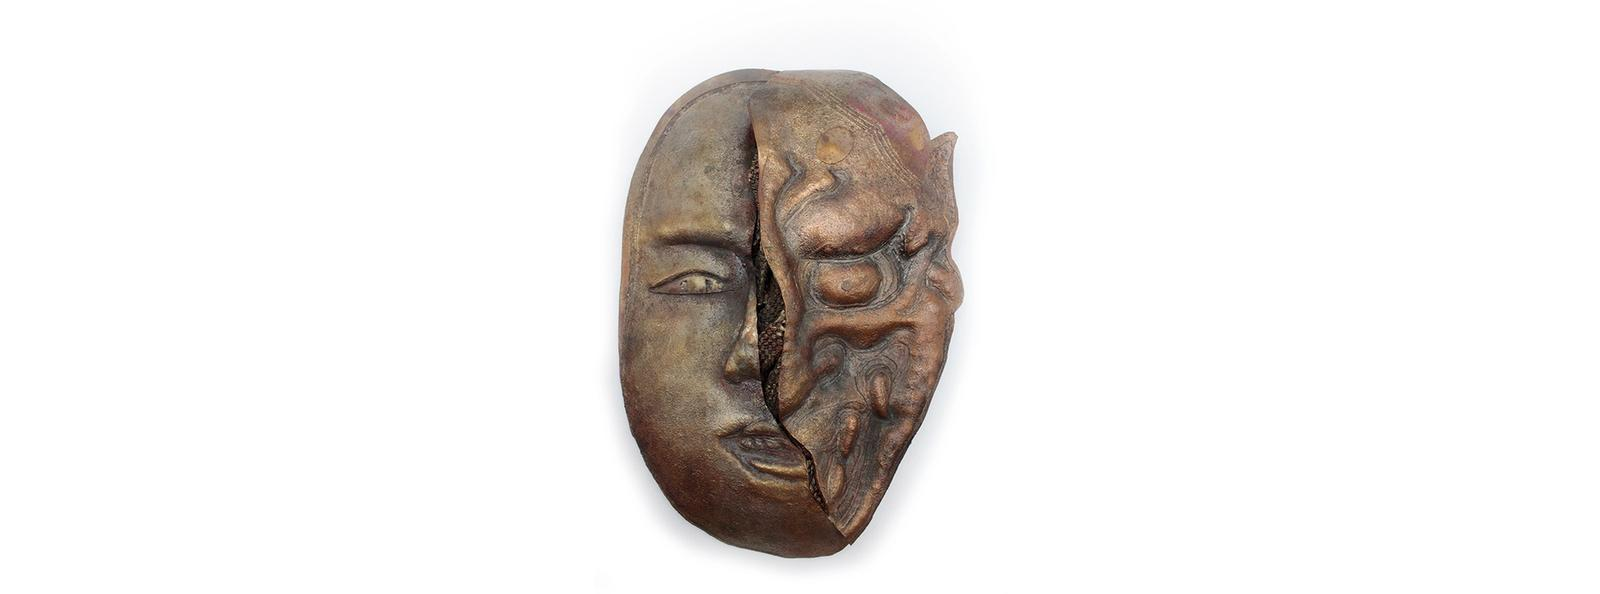 A piece that indicates how negative emotions can turn a human into a monste